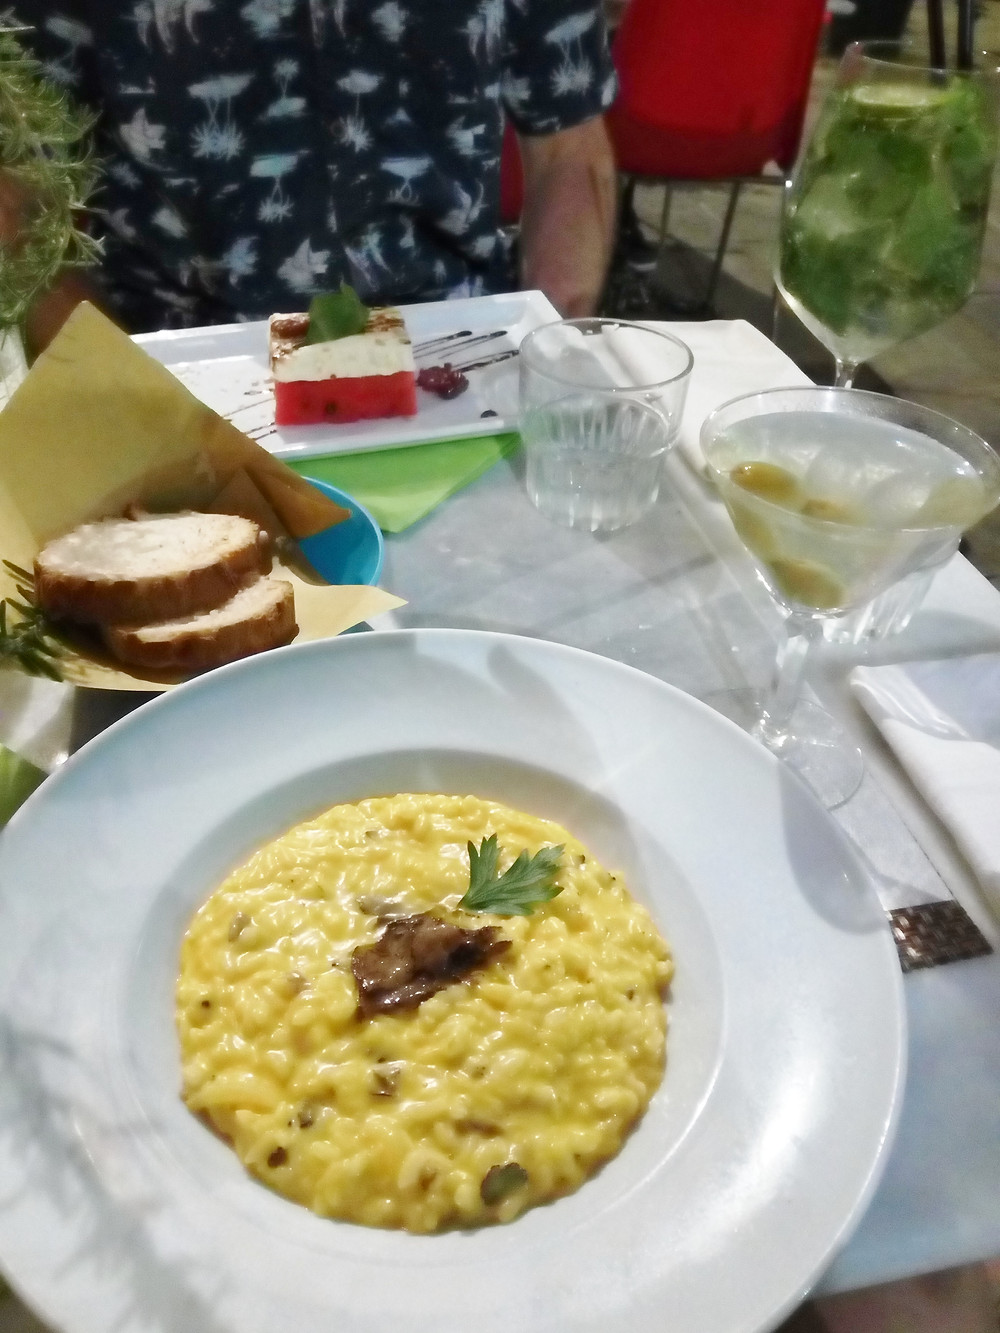 A gluten-free meal at Quinoa, Italy